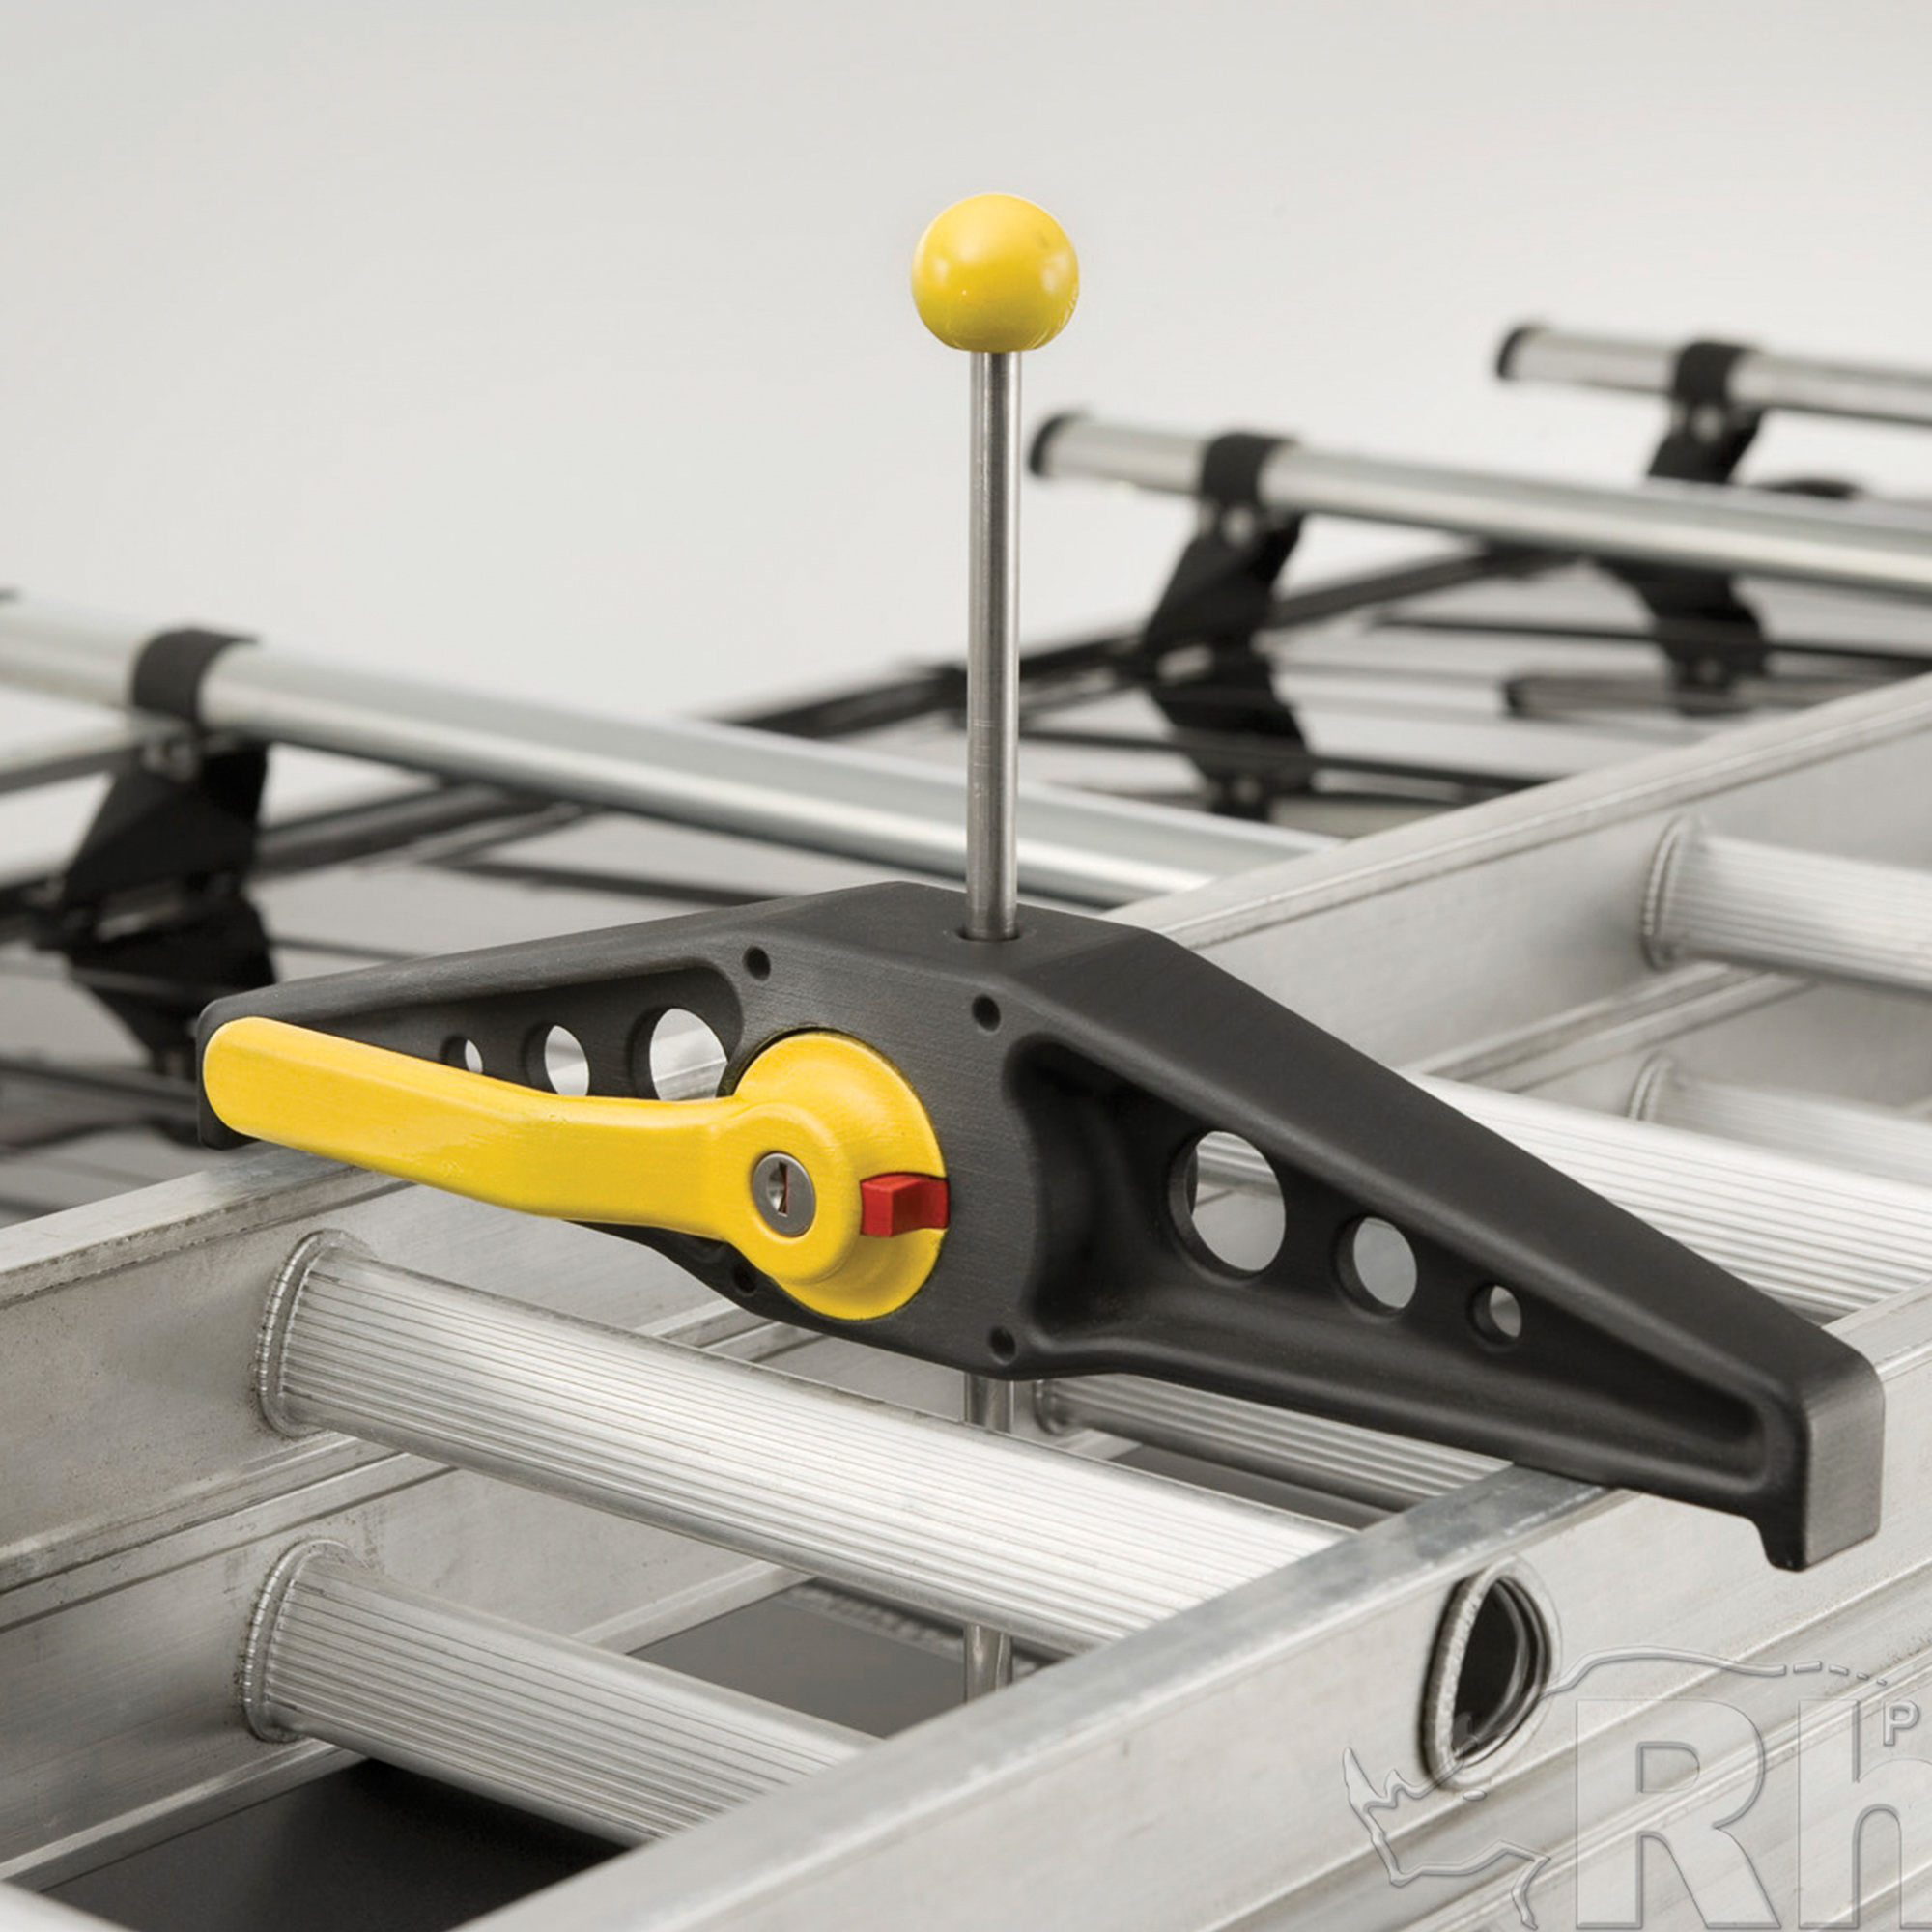 Rhino Safeclamp Ladder Clamps Easiest Way To Secure